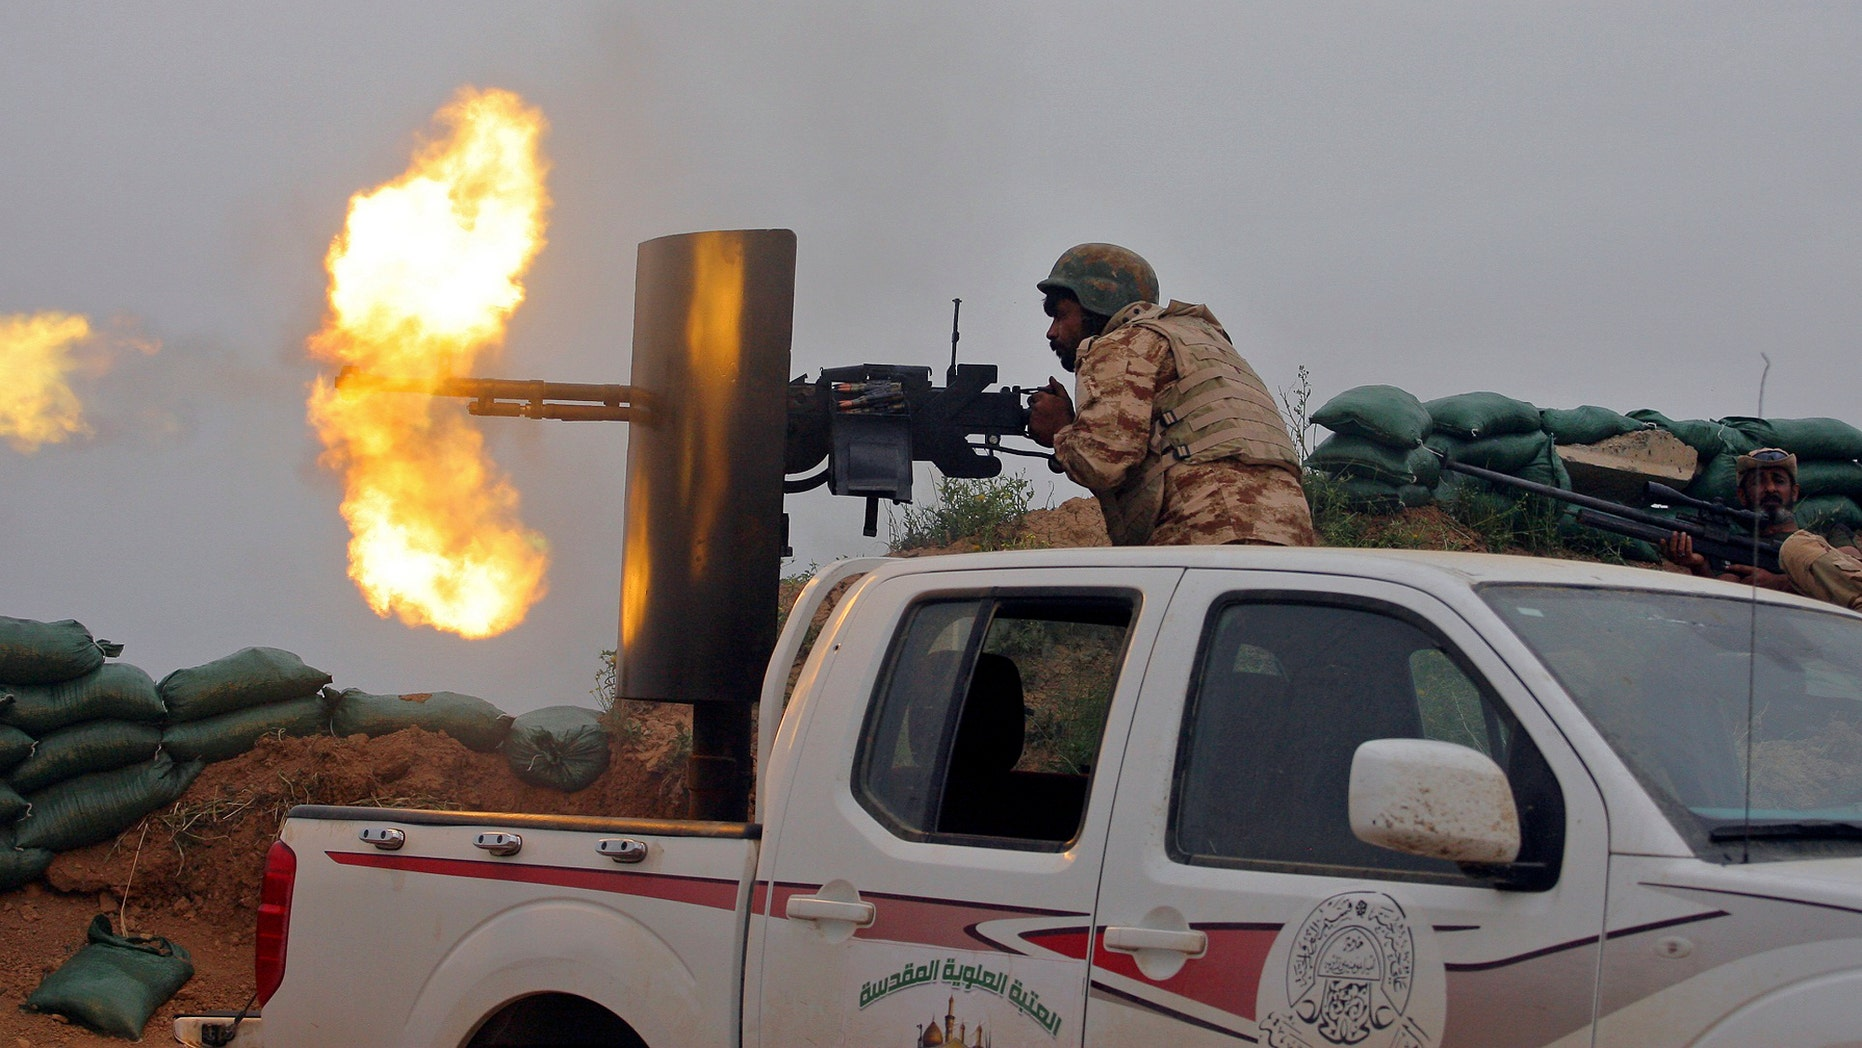 Iraqi Security forces and allied Popular Mobilization forces fire towards positions in the Islamic State group held town of Besher, during a military operation to regain control of the small town, outside the oil-rich city of Kirkuk, 180 miles (290 kilometers) north of Baghdad, Iraq, Sunday, April 10, 2016. (AP Photo/Anmar Khalil)